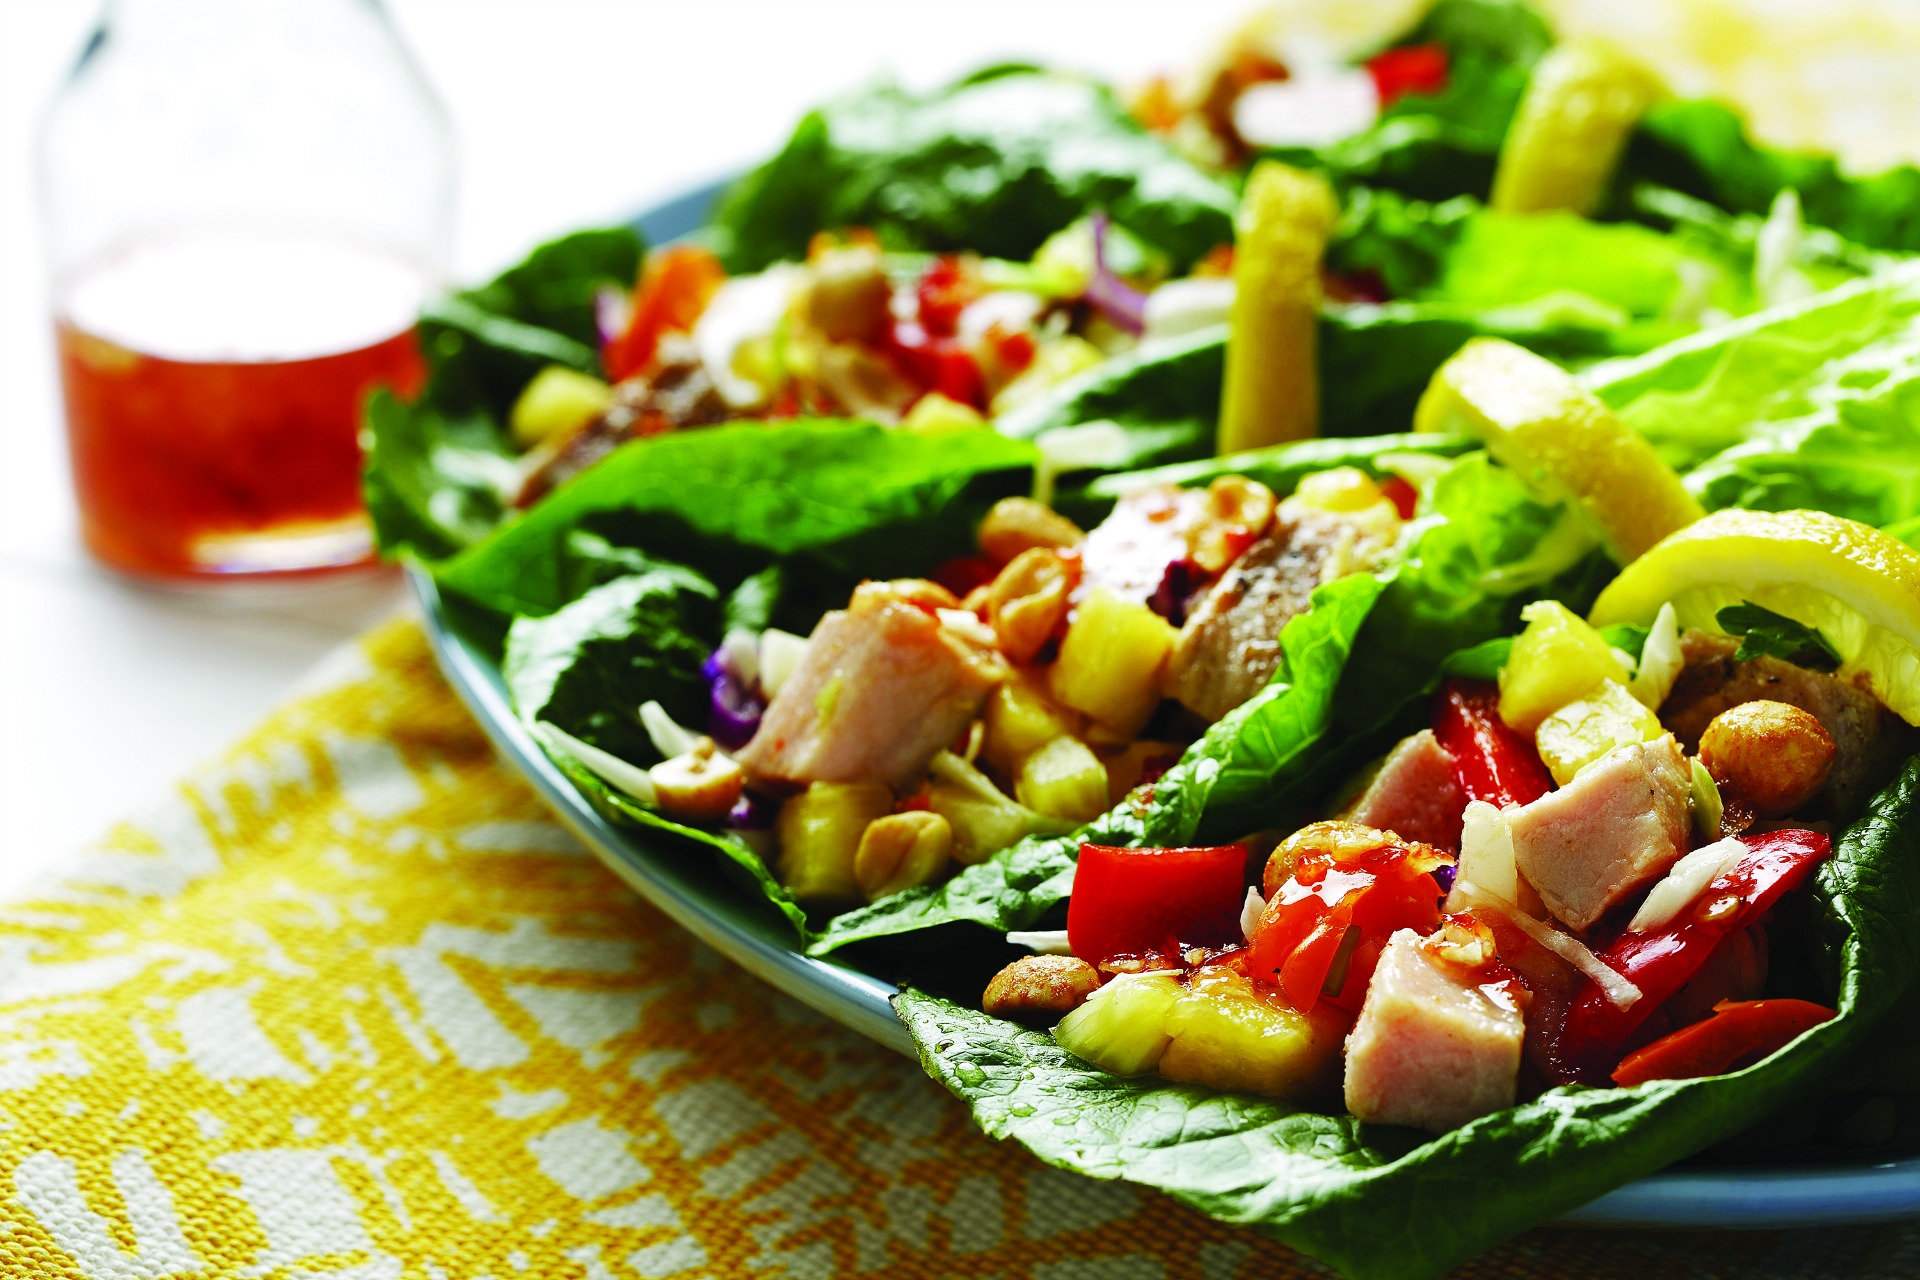 Chopped chicken, roasted red peppers, chopped pineapple and peanuts on a lettuce leaf